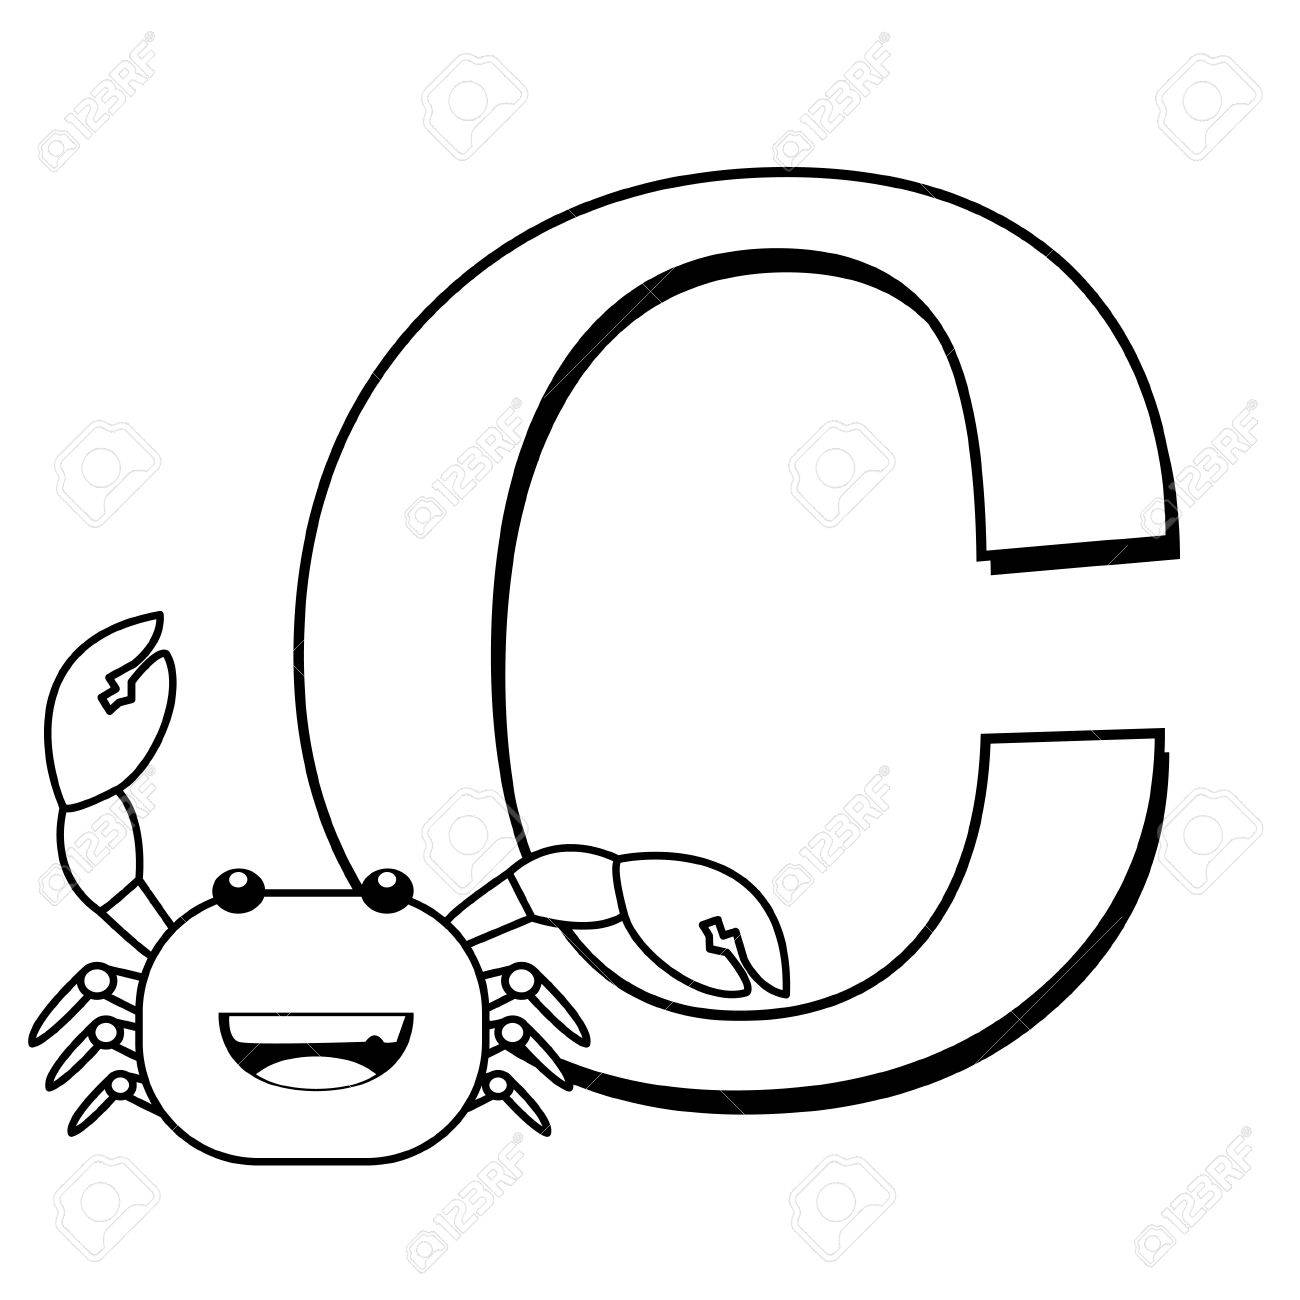 coloring alphabet for kids c with crab royalty free cliparts